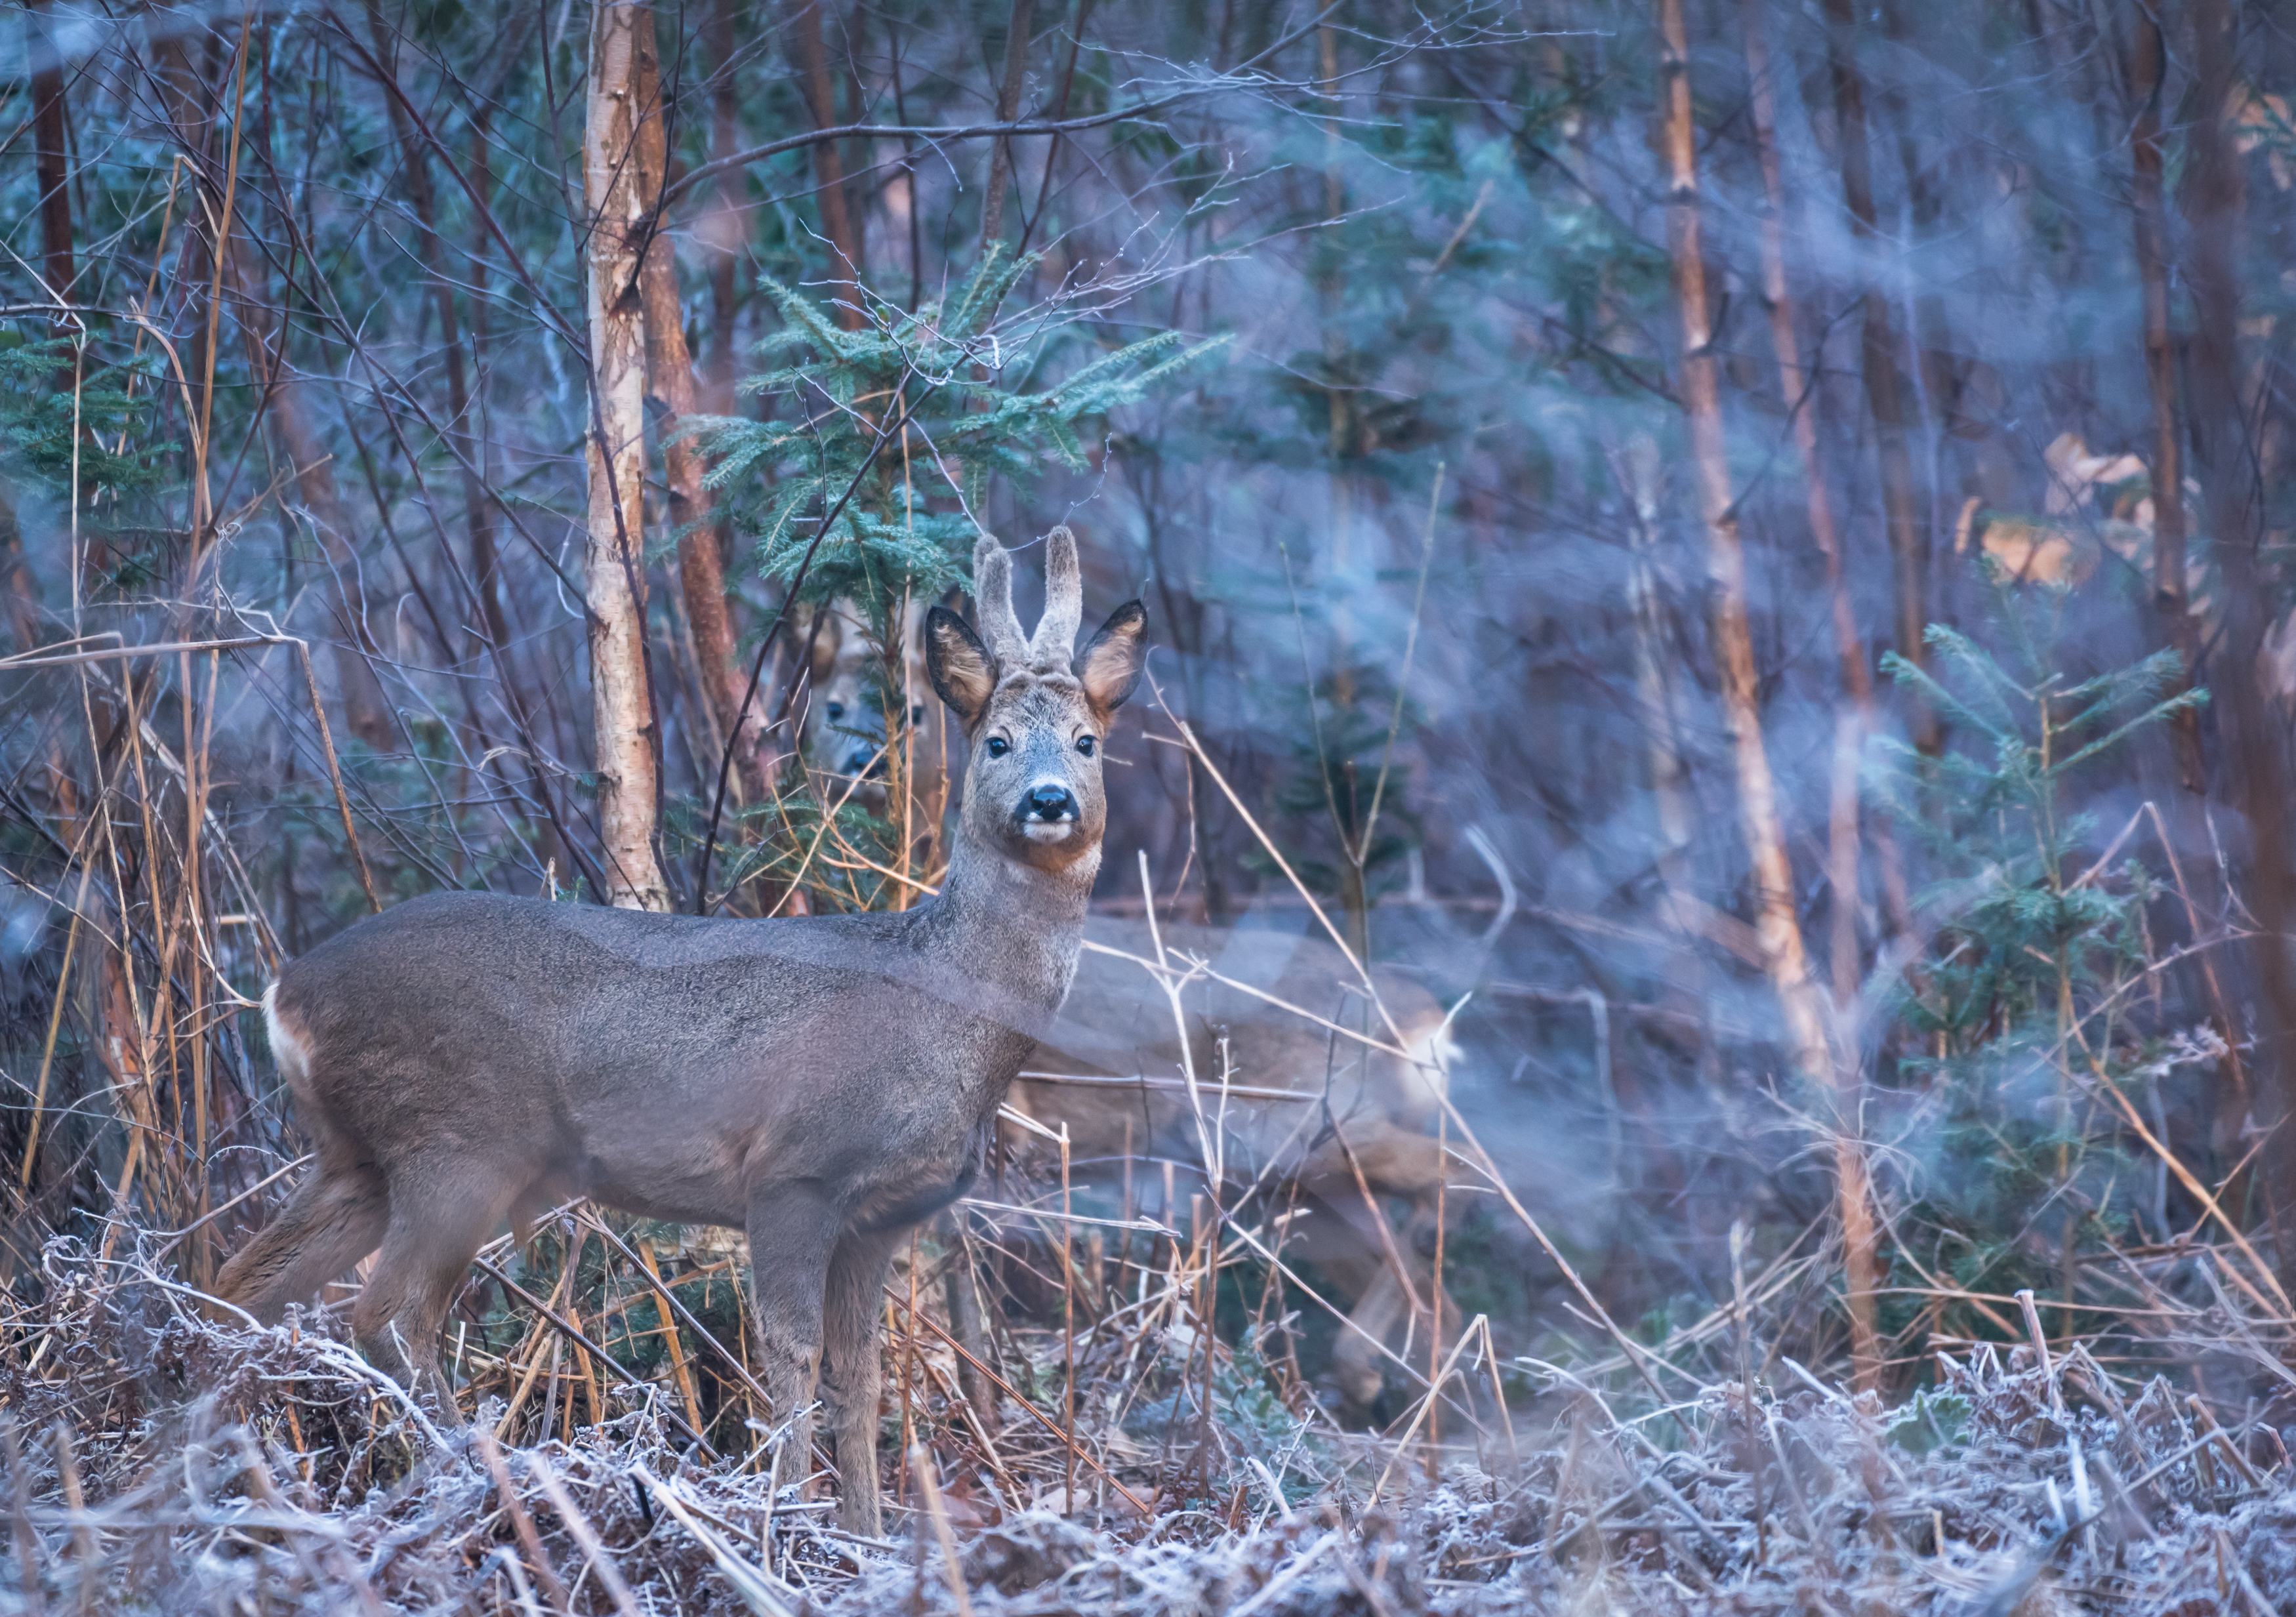 Roe deer in the early morning in the forest